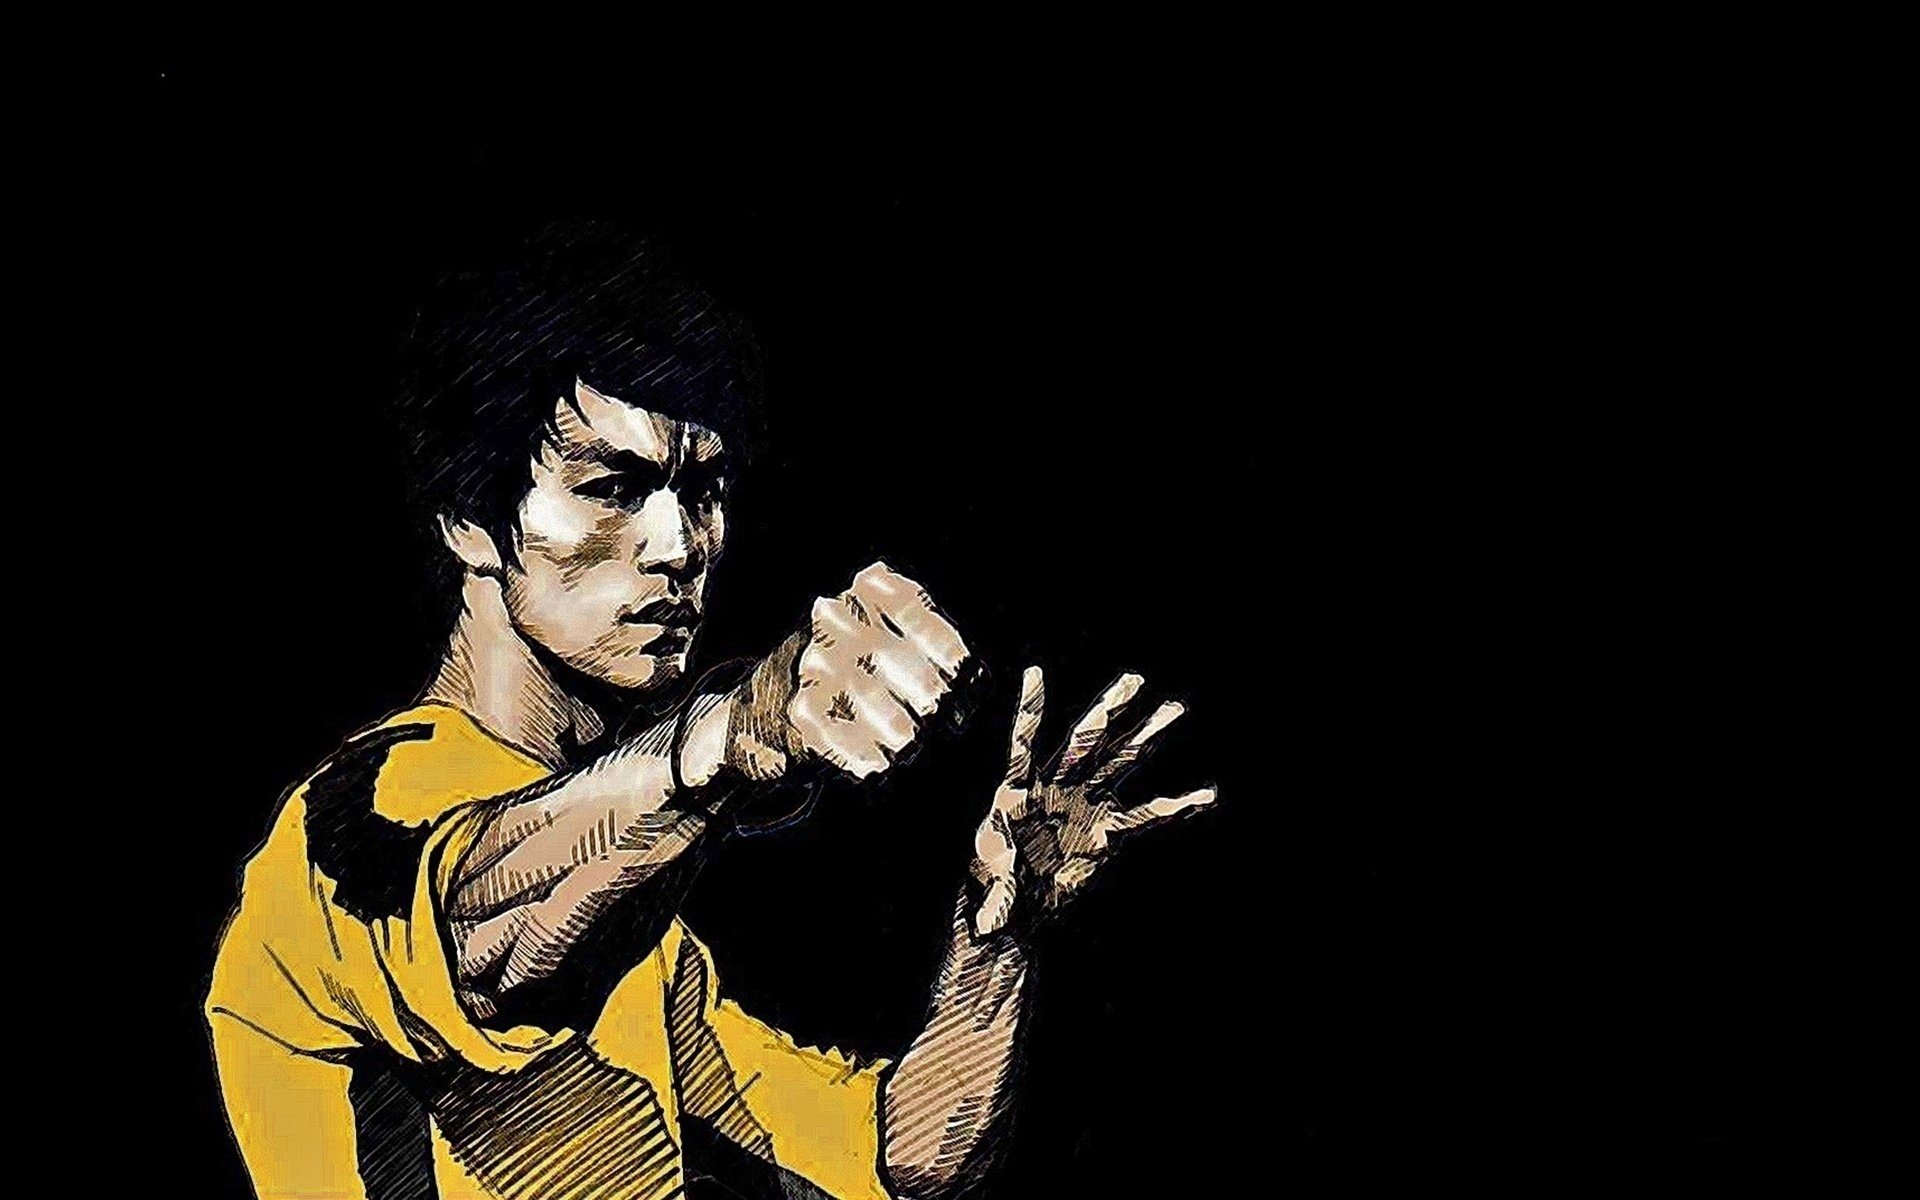 10 Best Bruce Lee Wallpaper 1920X1080 FULL HD 1080p For PC Background